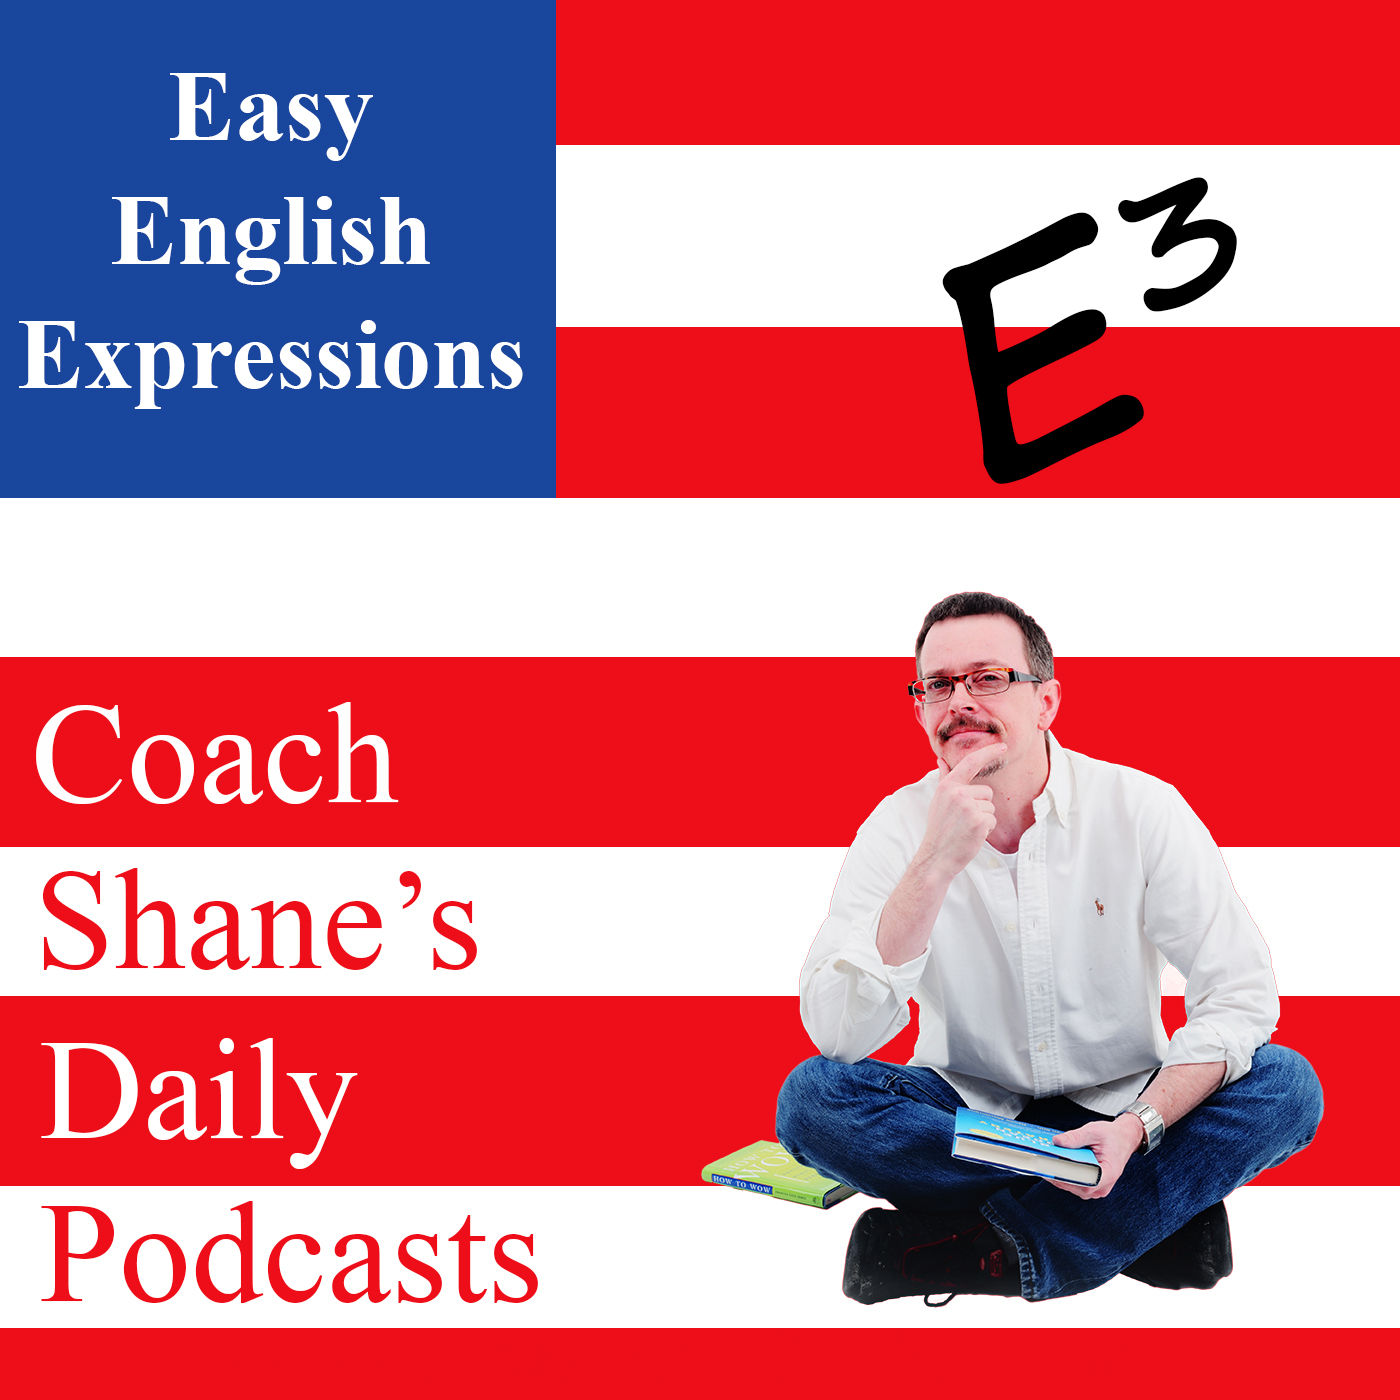 32 Daily Easy English Expression PODCAST—To rain on someone's parade~~